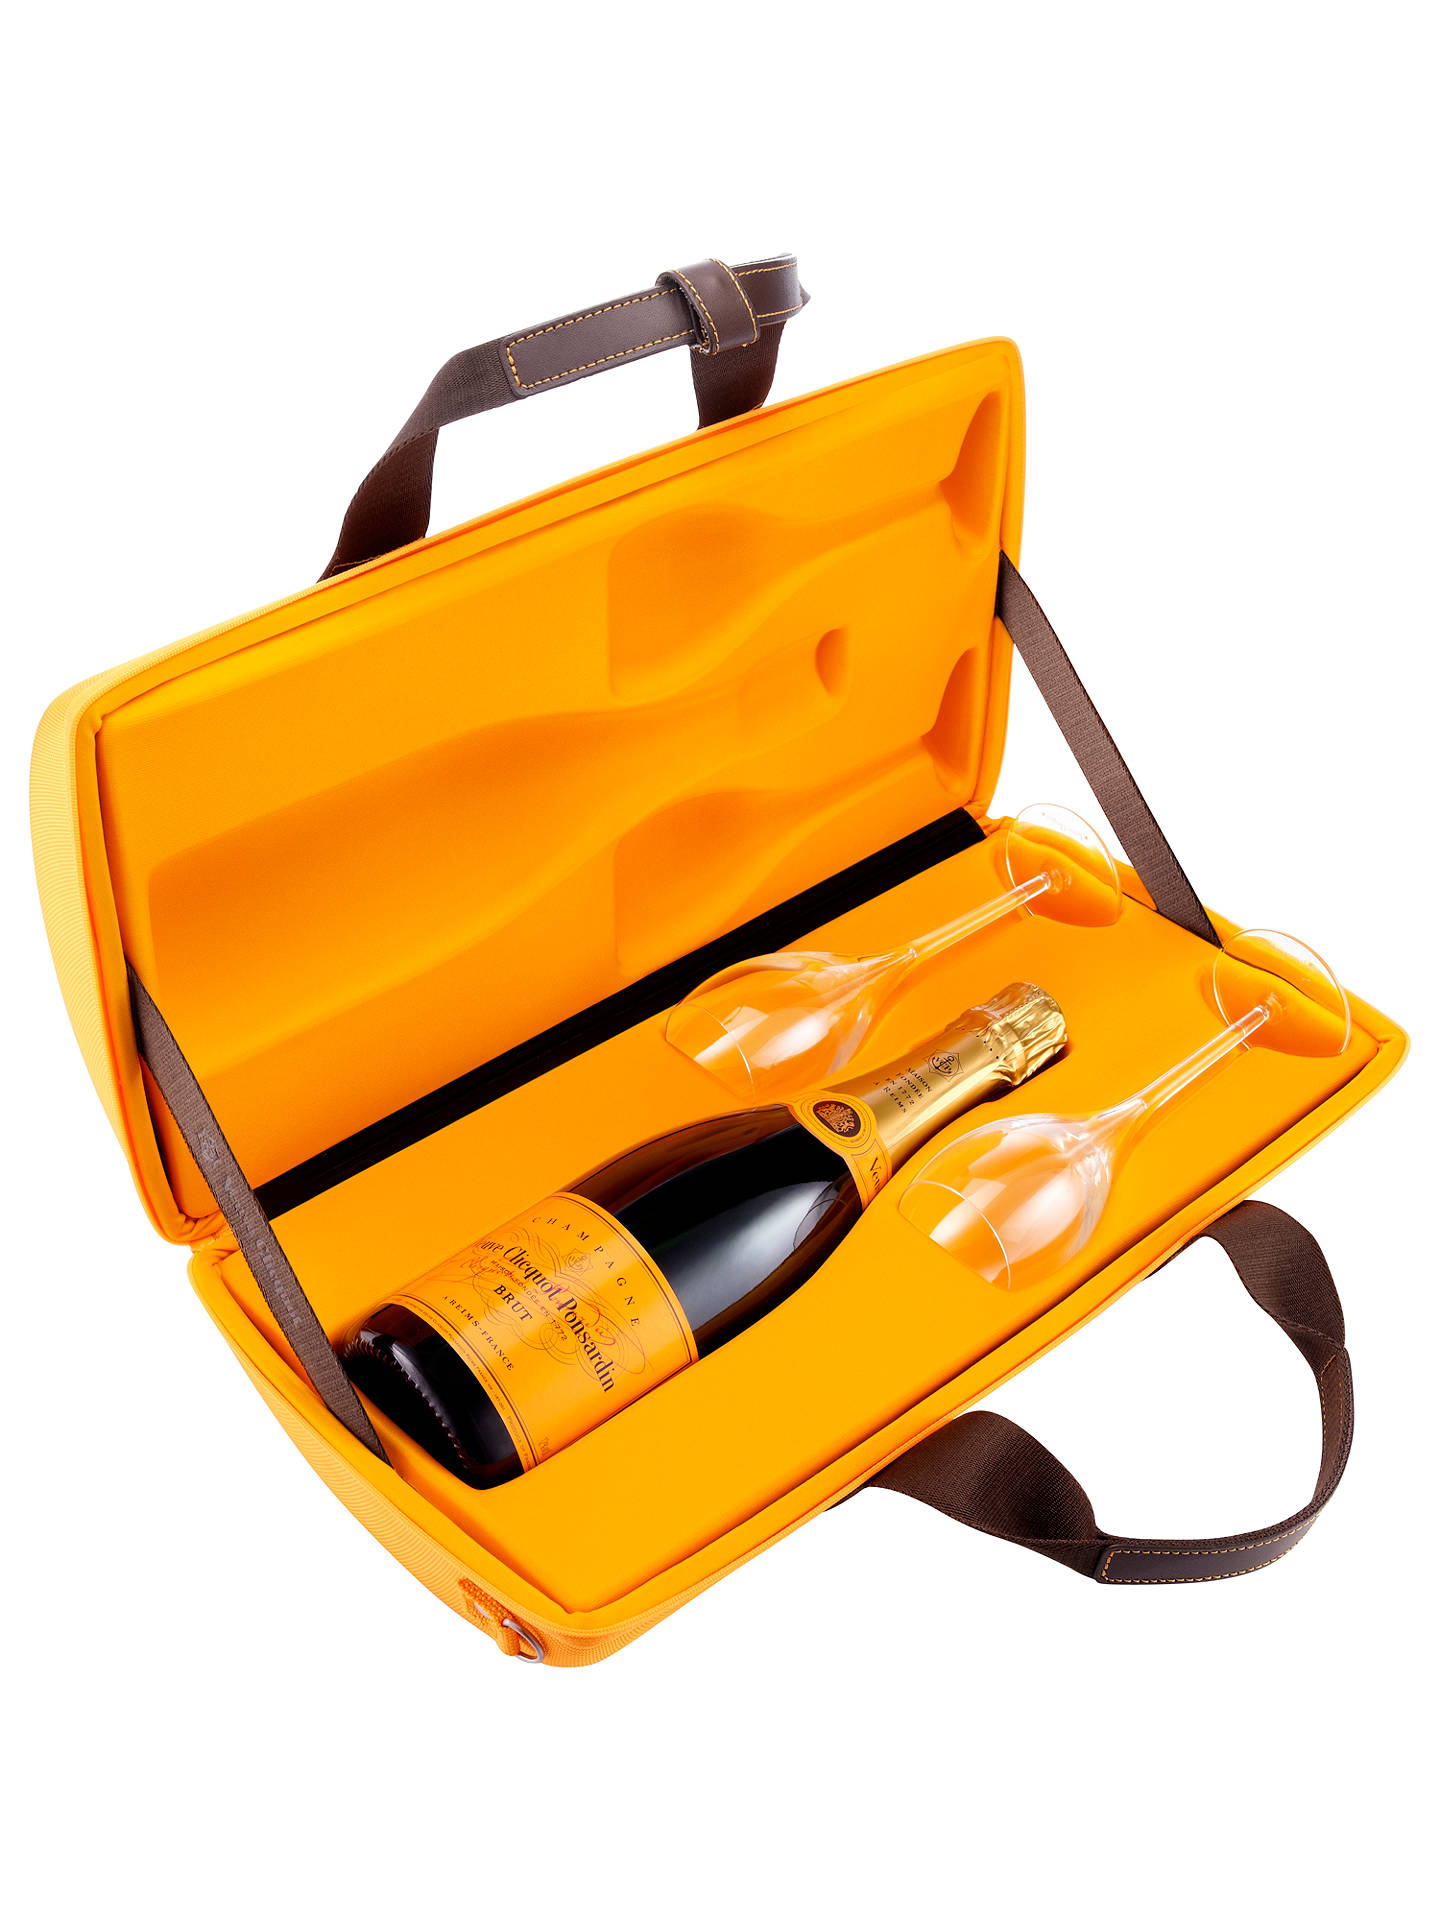 Veuve Clicquot Yellow Label Nv Champagne Traveller Gift